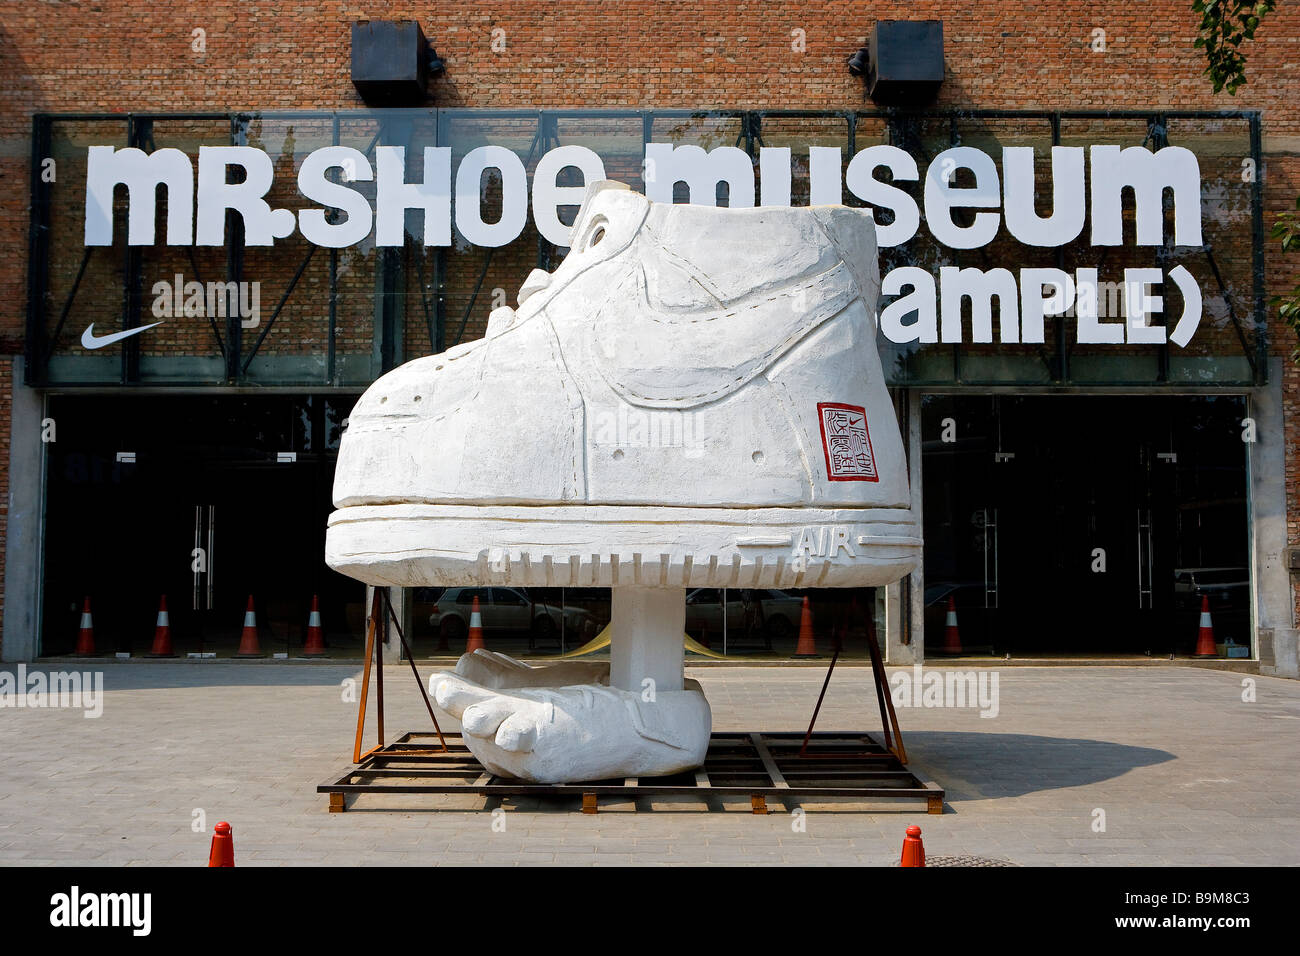 China, Beijing, Nike 706 Store held the Mr. Shoe Museum (Sample), exhibition of Michael Lau sculpture - Stock Image